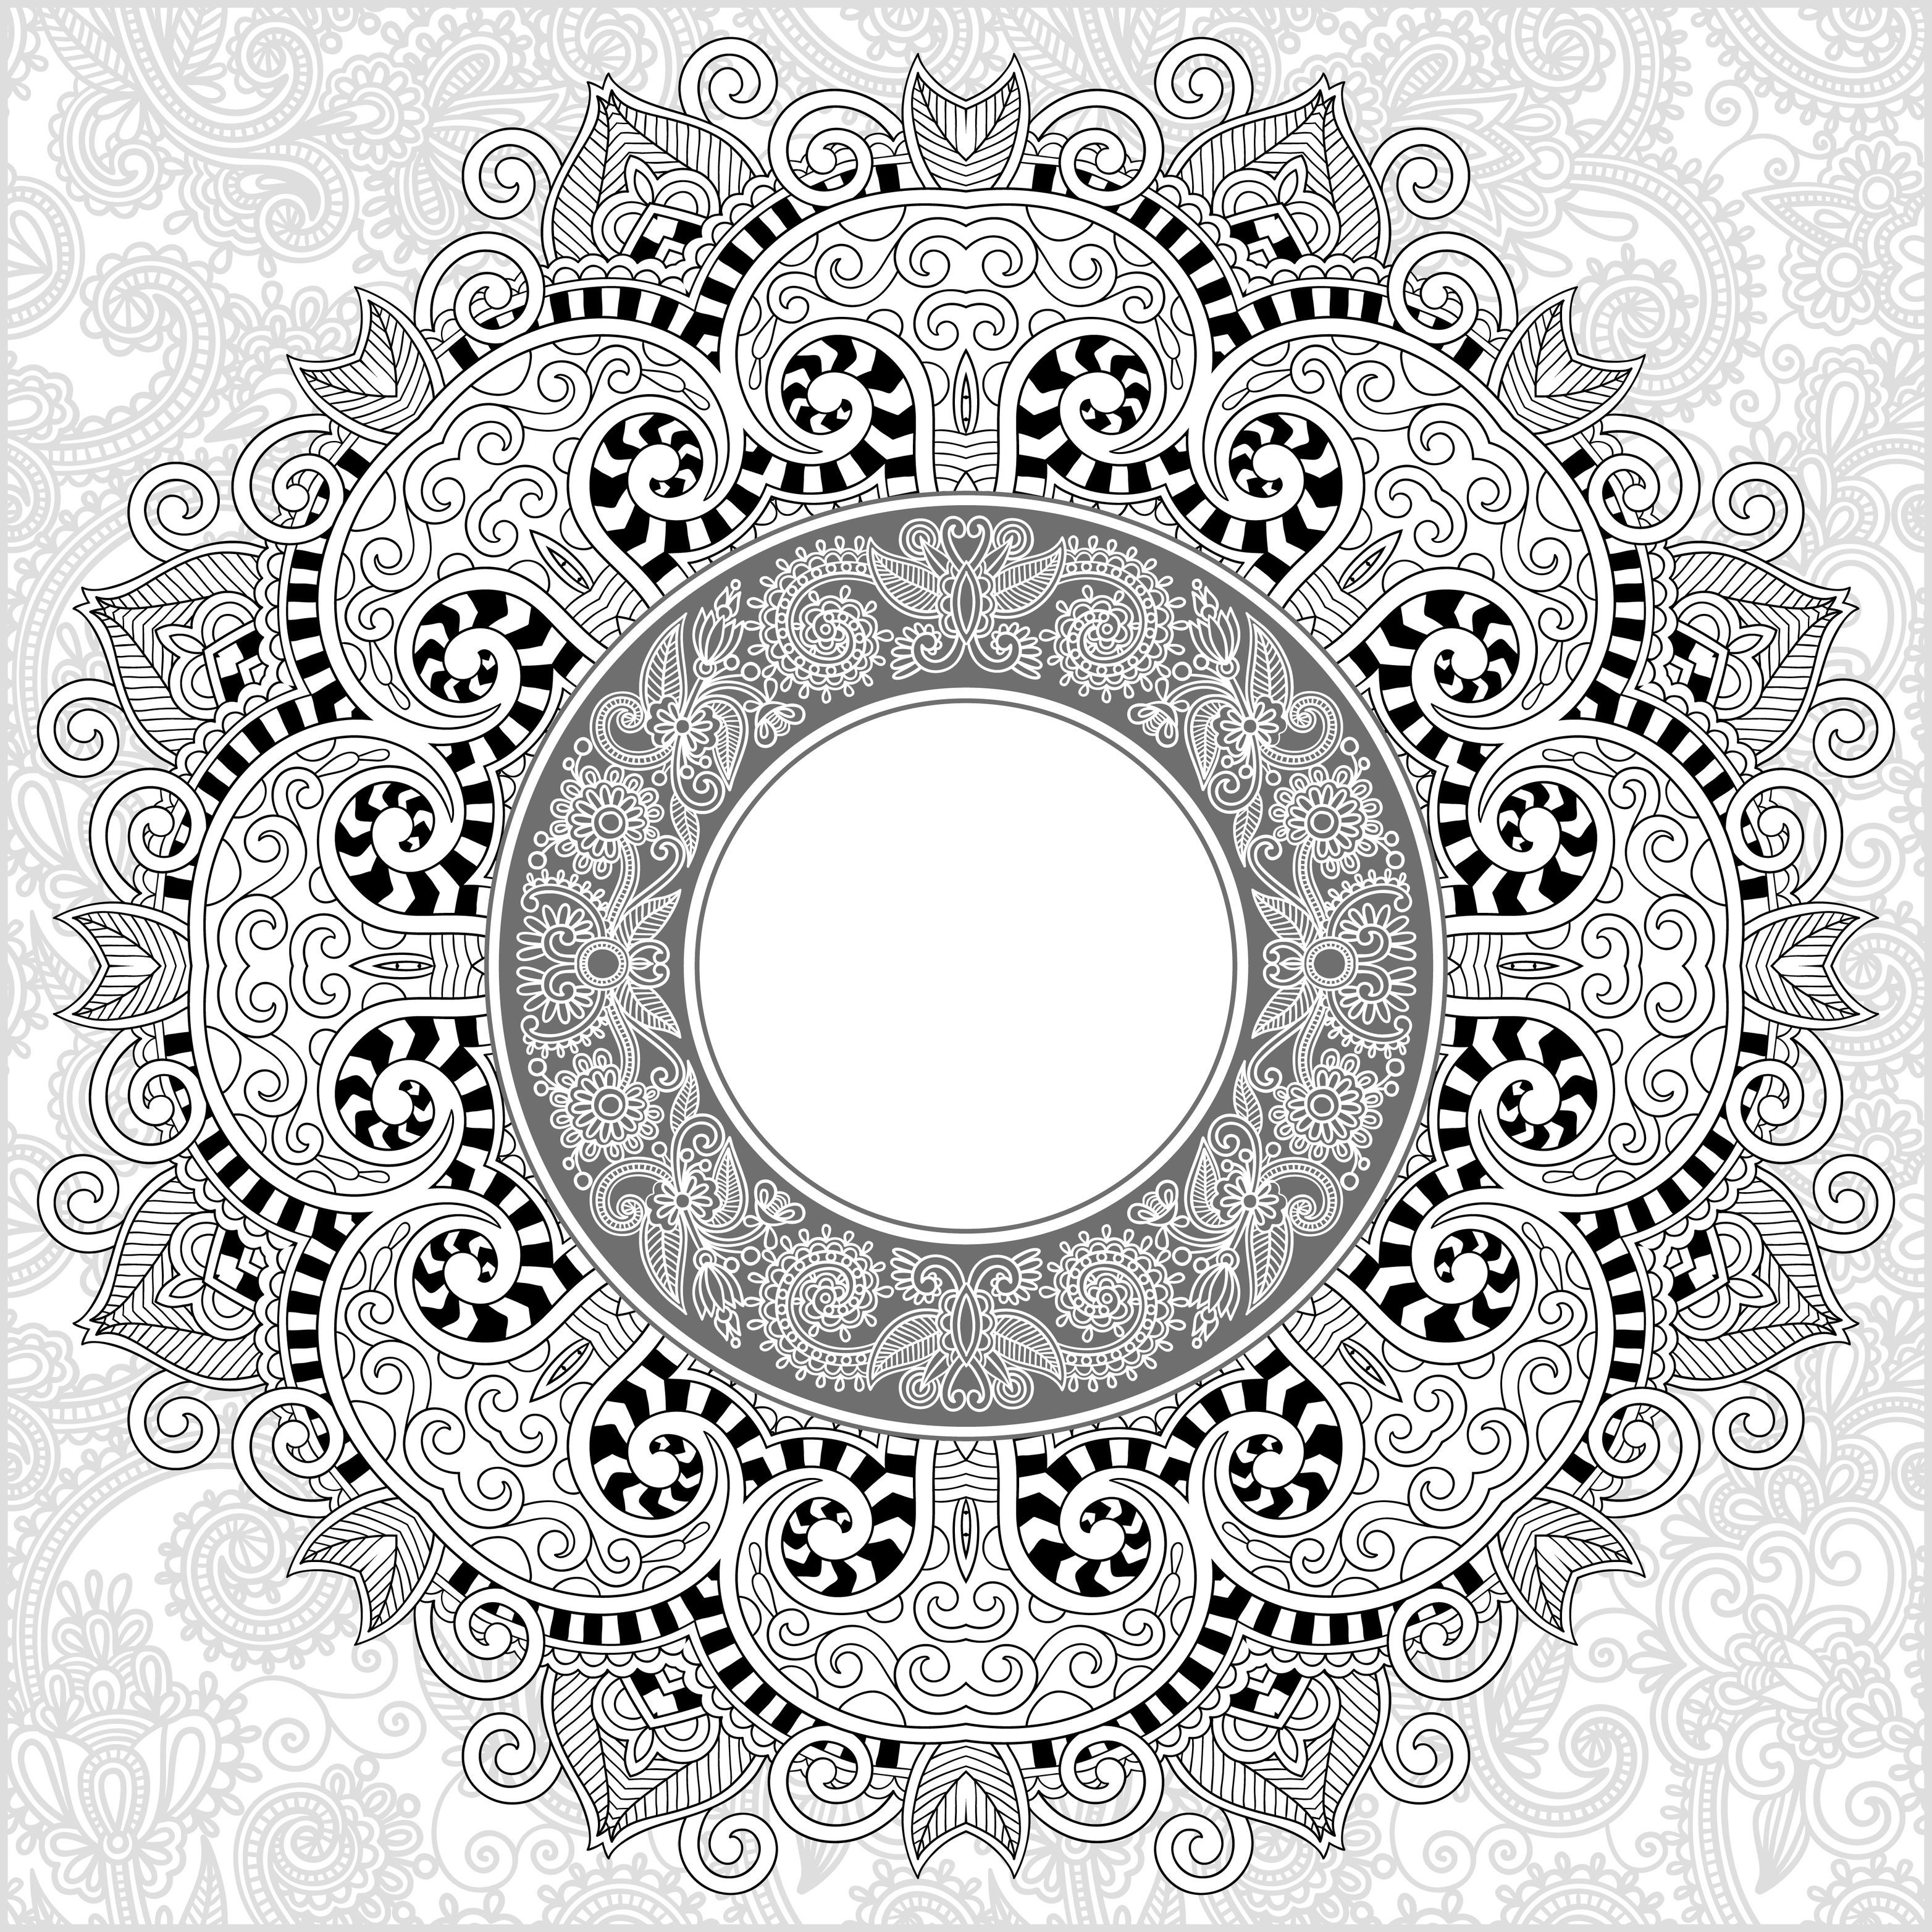 free mandala coloring pages for adults turtle mandala turtle coloring pages for pages free mandala adults coloring